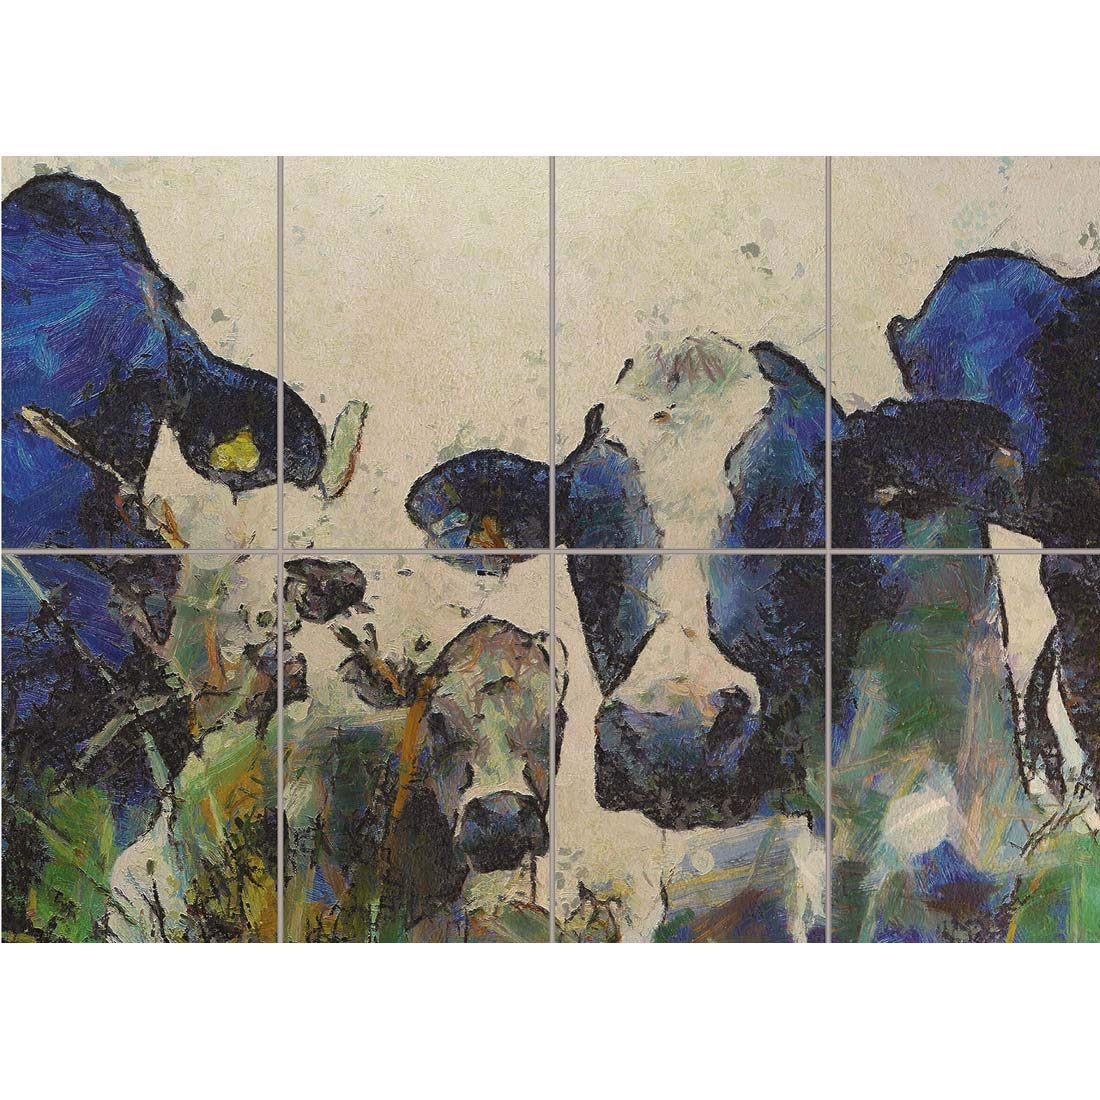 NATURE COW CATTLE FARM ANIMAL GIANT WALL ART PRINT PANEL ...